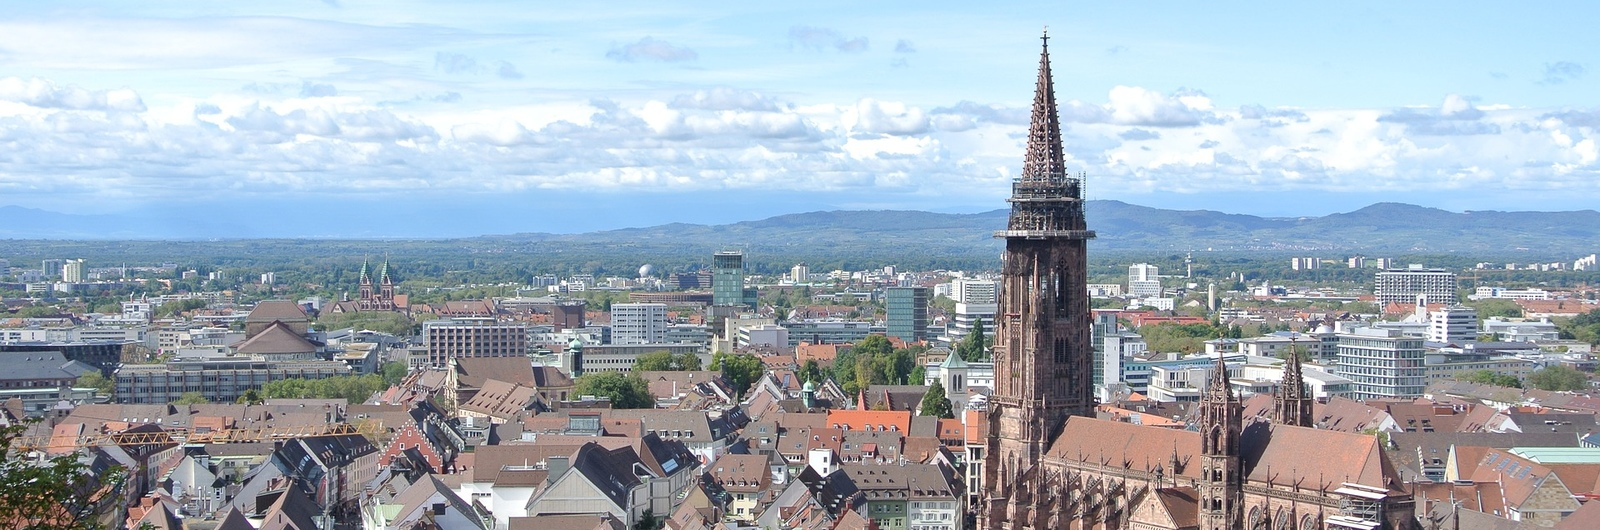 freiburg city header